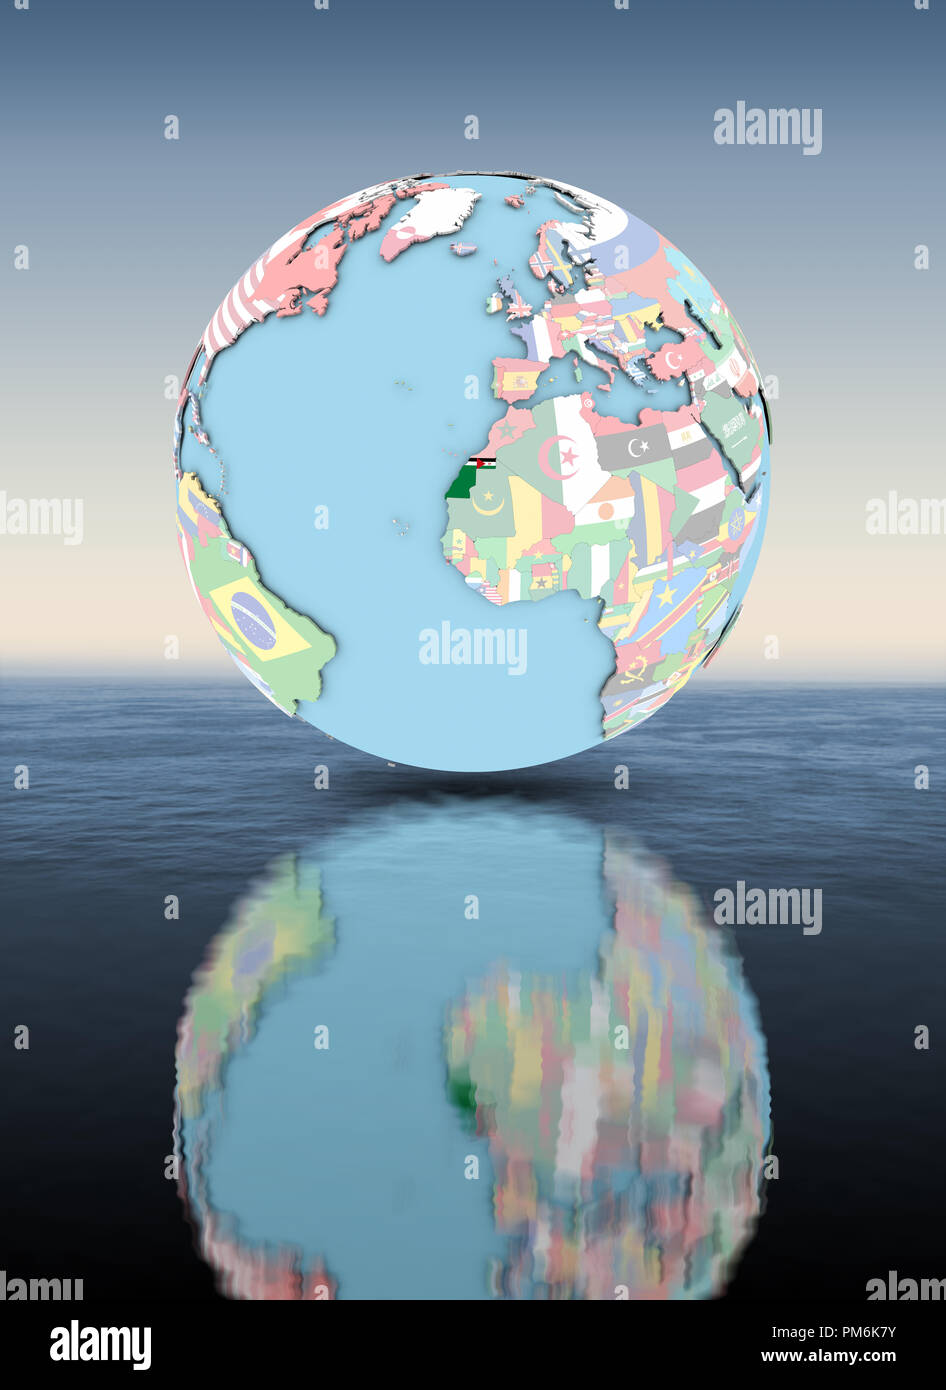 Western Sahara on political globe with national flags floating above water. 3D illustration. - Stock Image